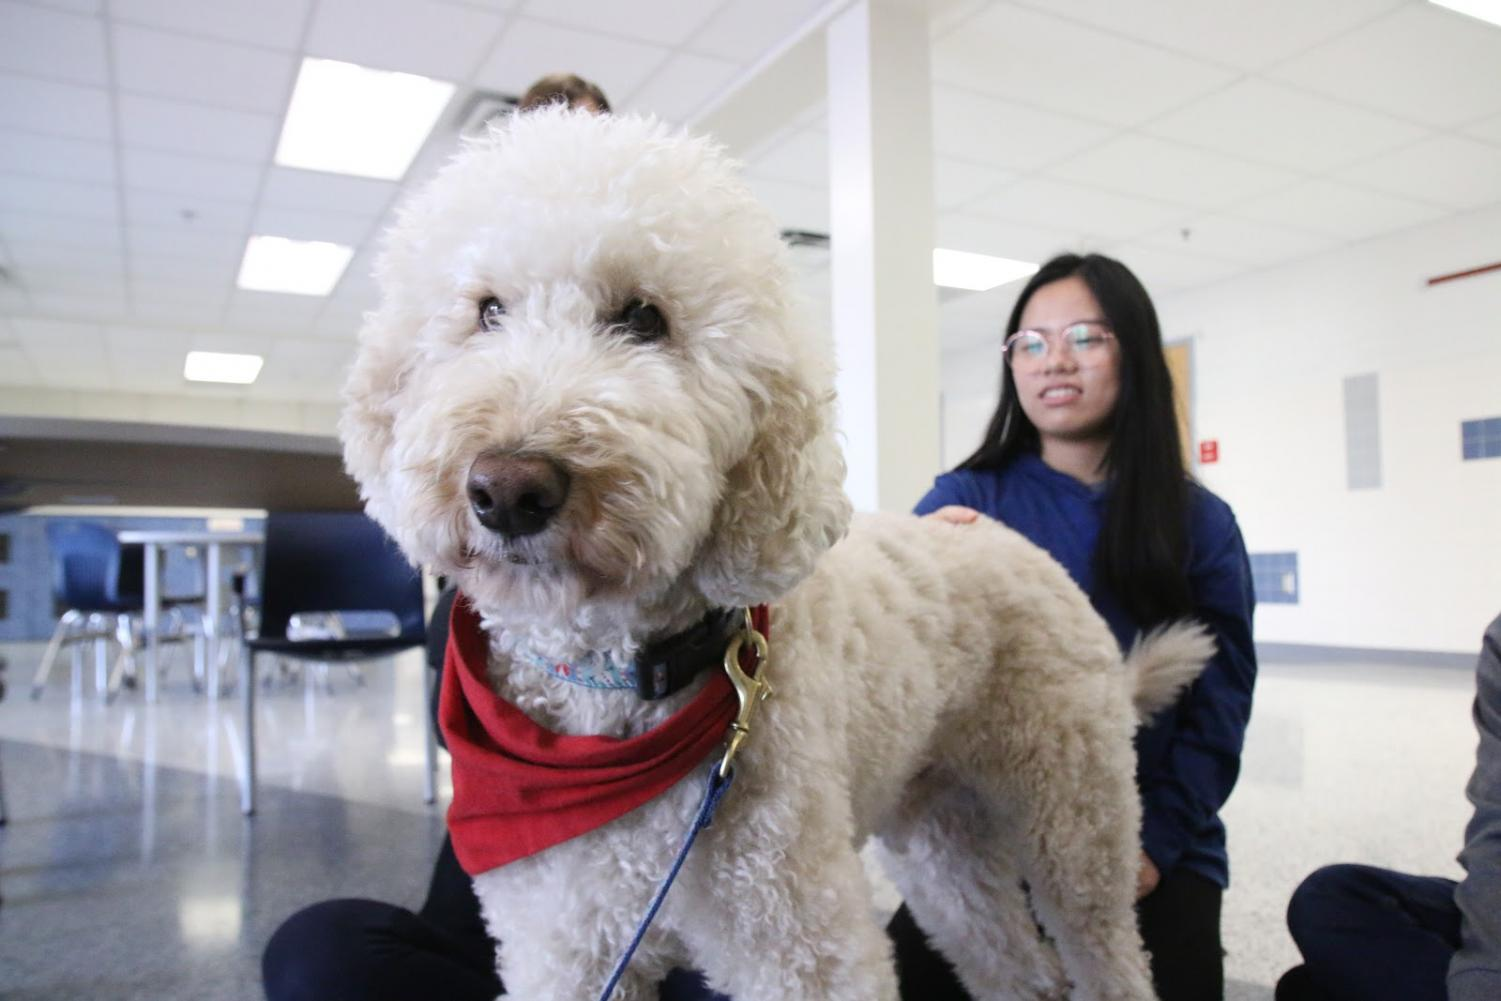 As APs come up, one good way to destress includes playing with your pets or the therapy dogs offered at TJ during Stress Less Laugh More week.